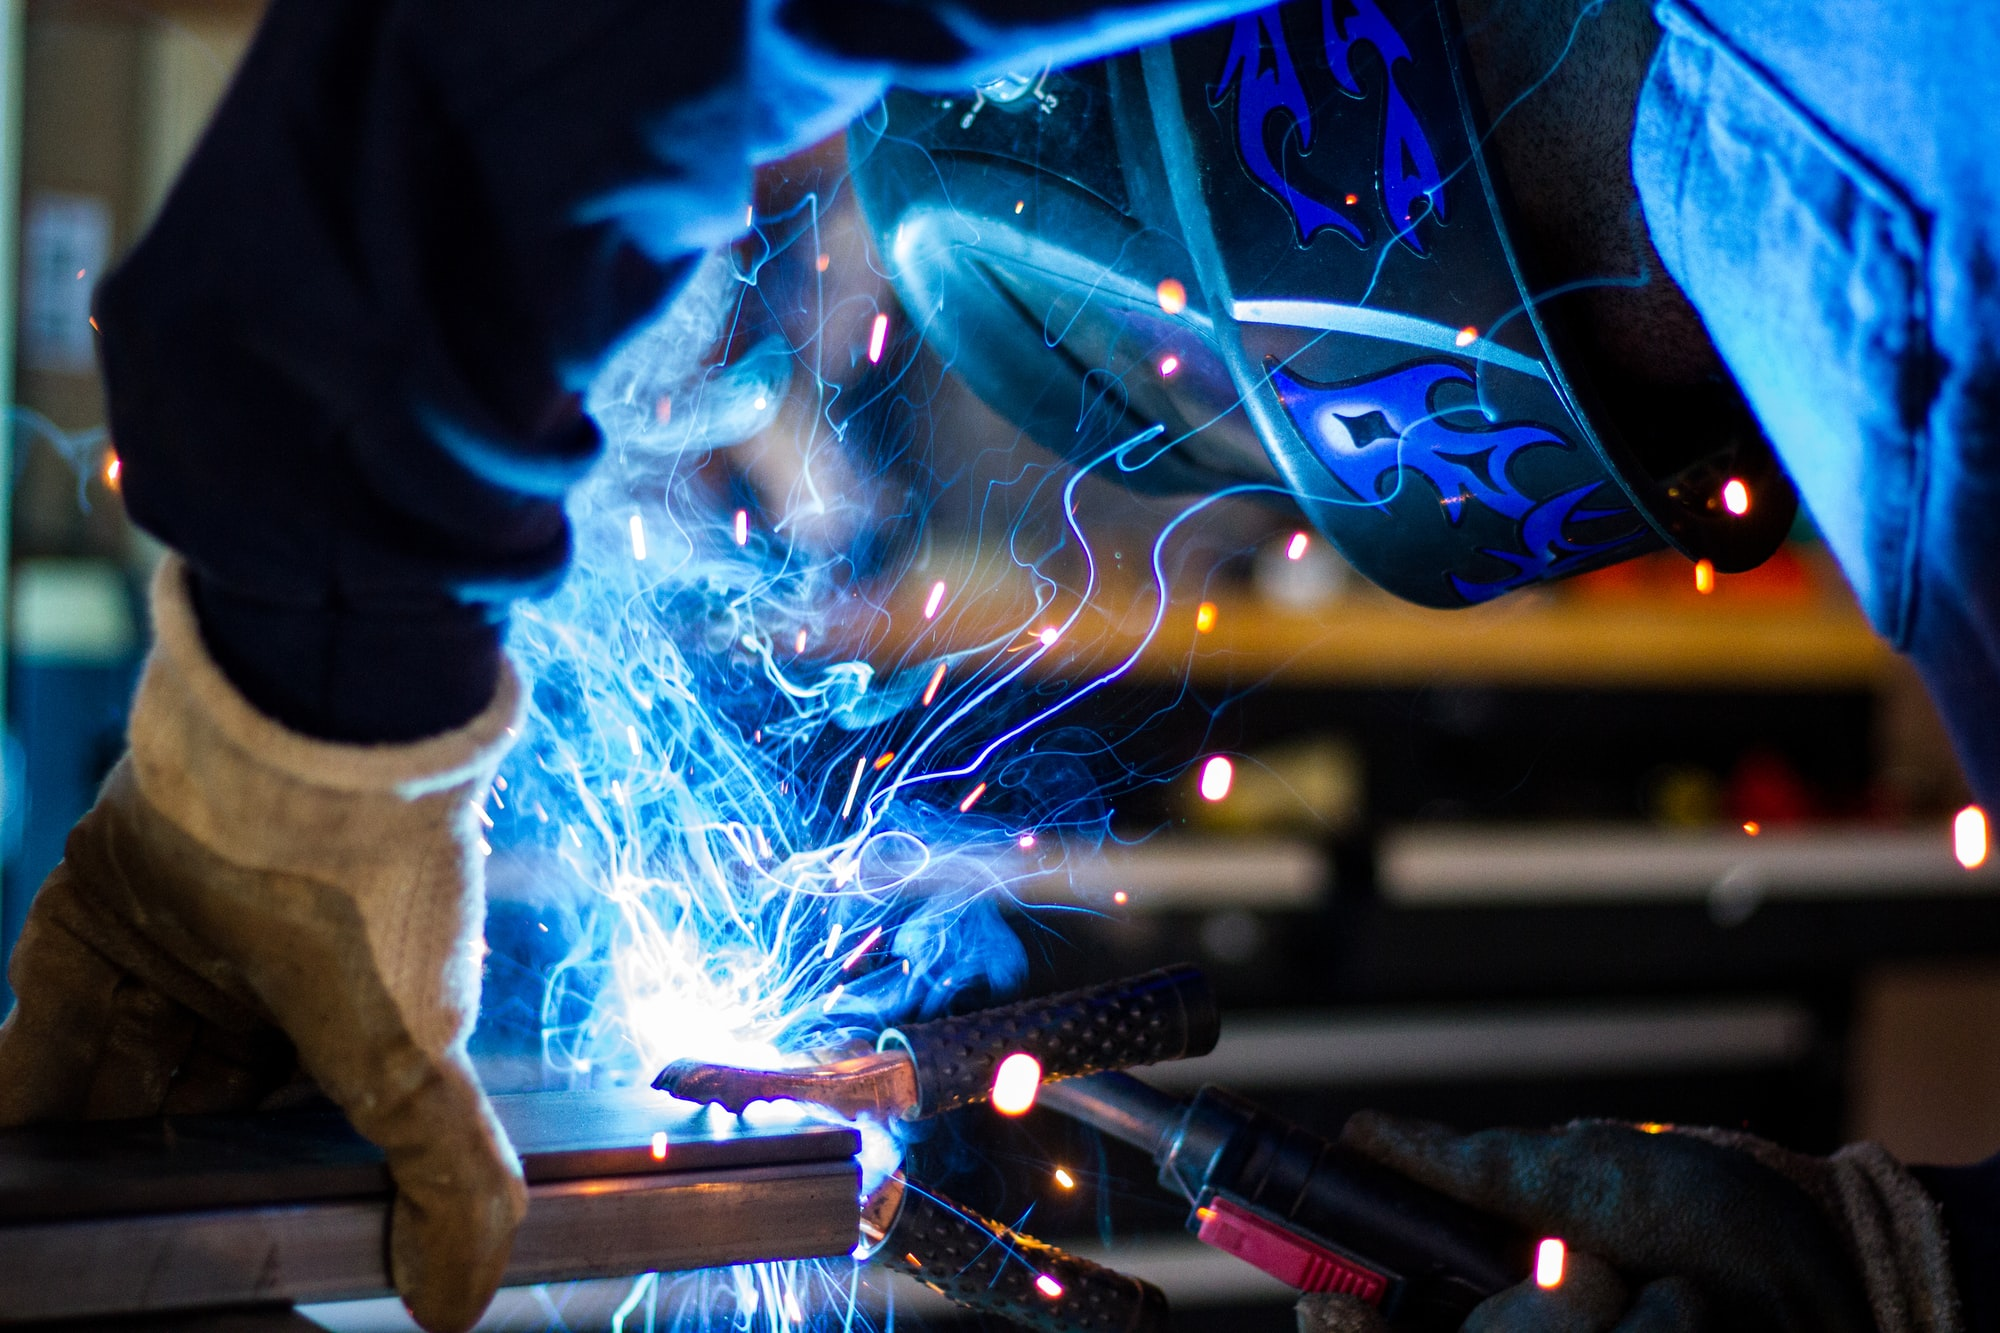 Top 8 Best Welding Courses, Classes and Workshops In London